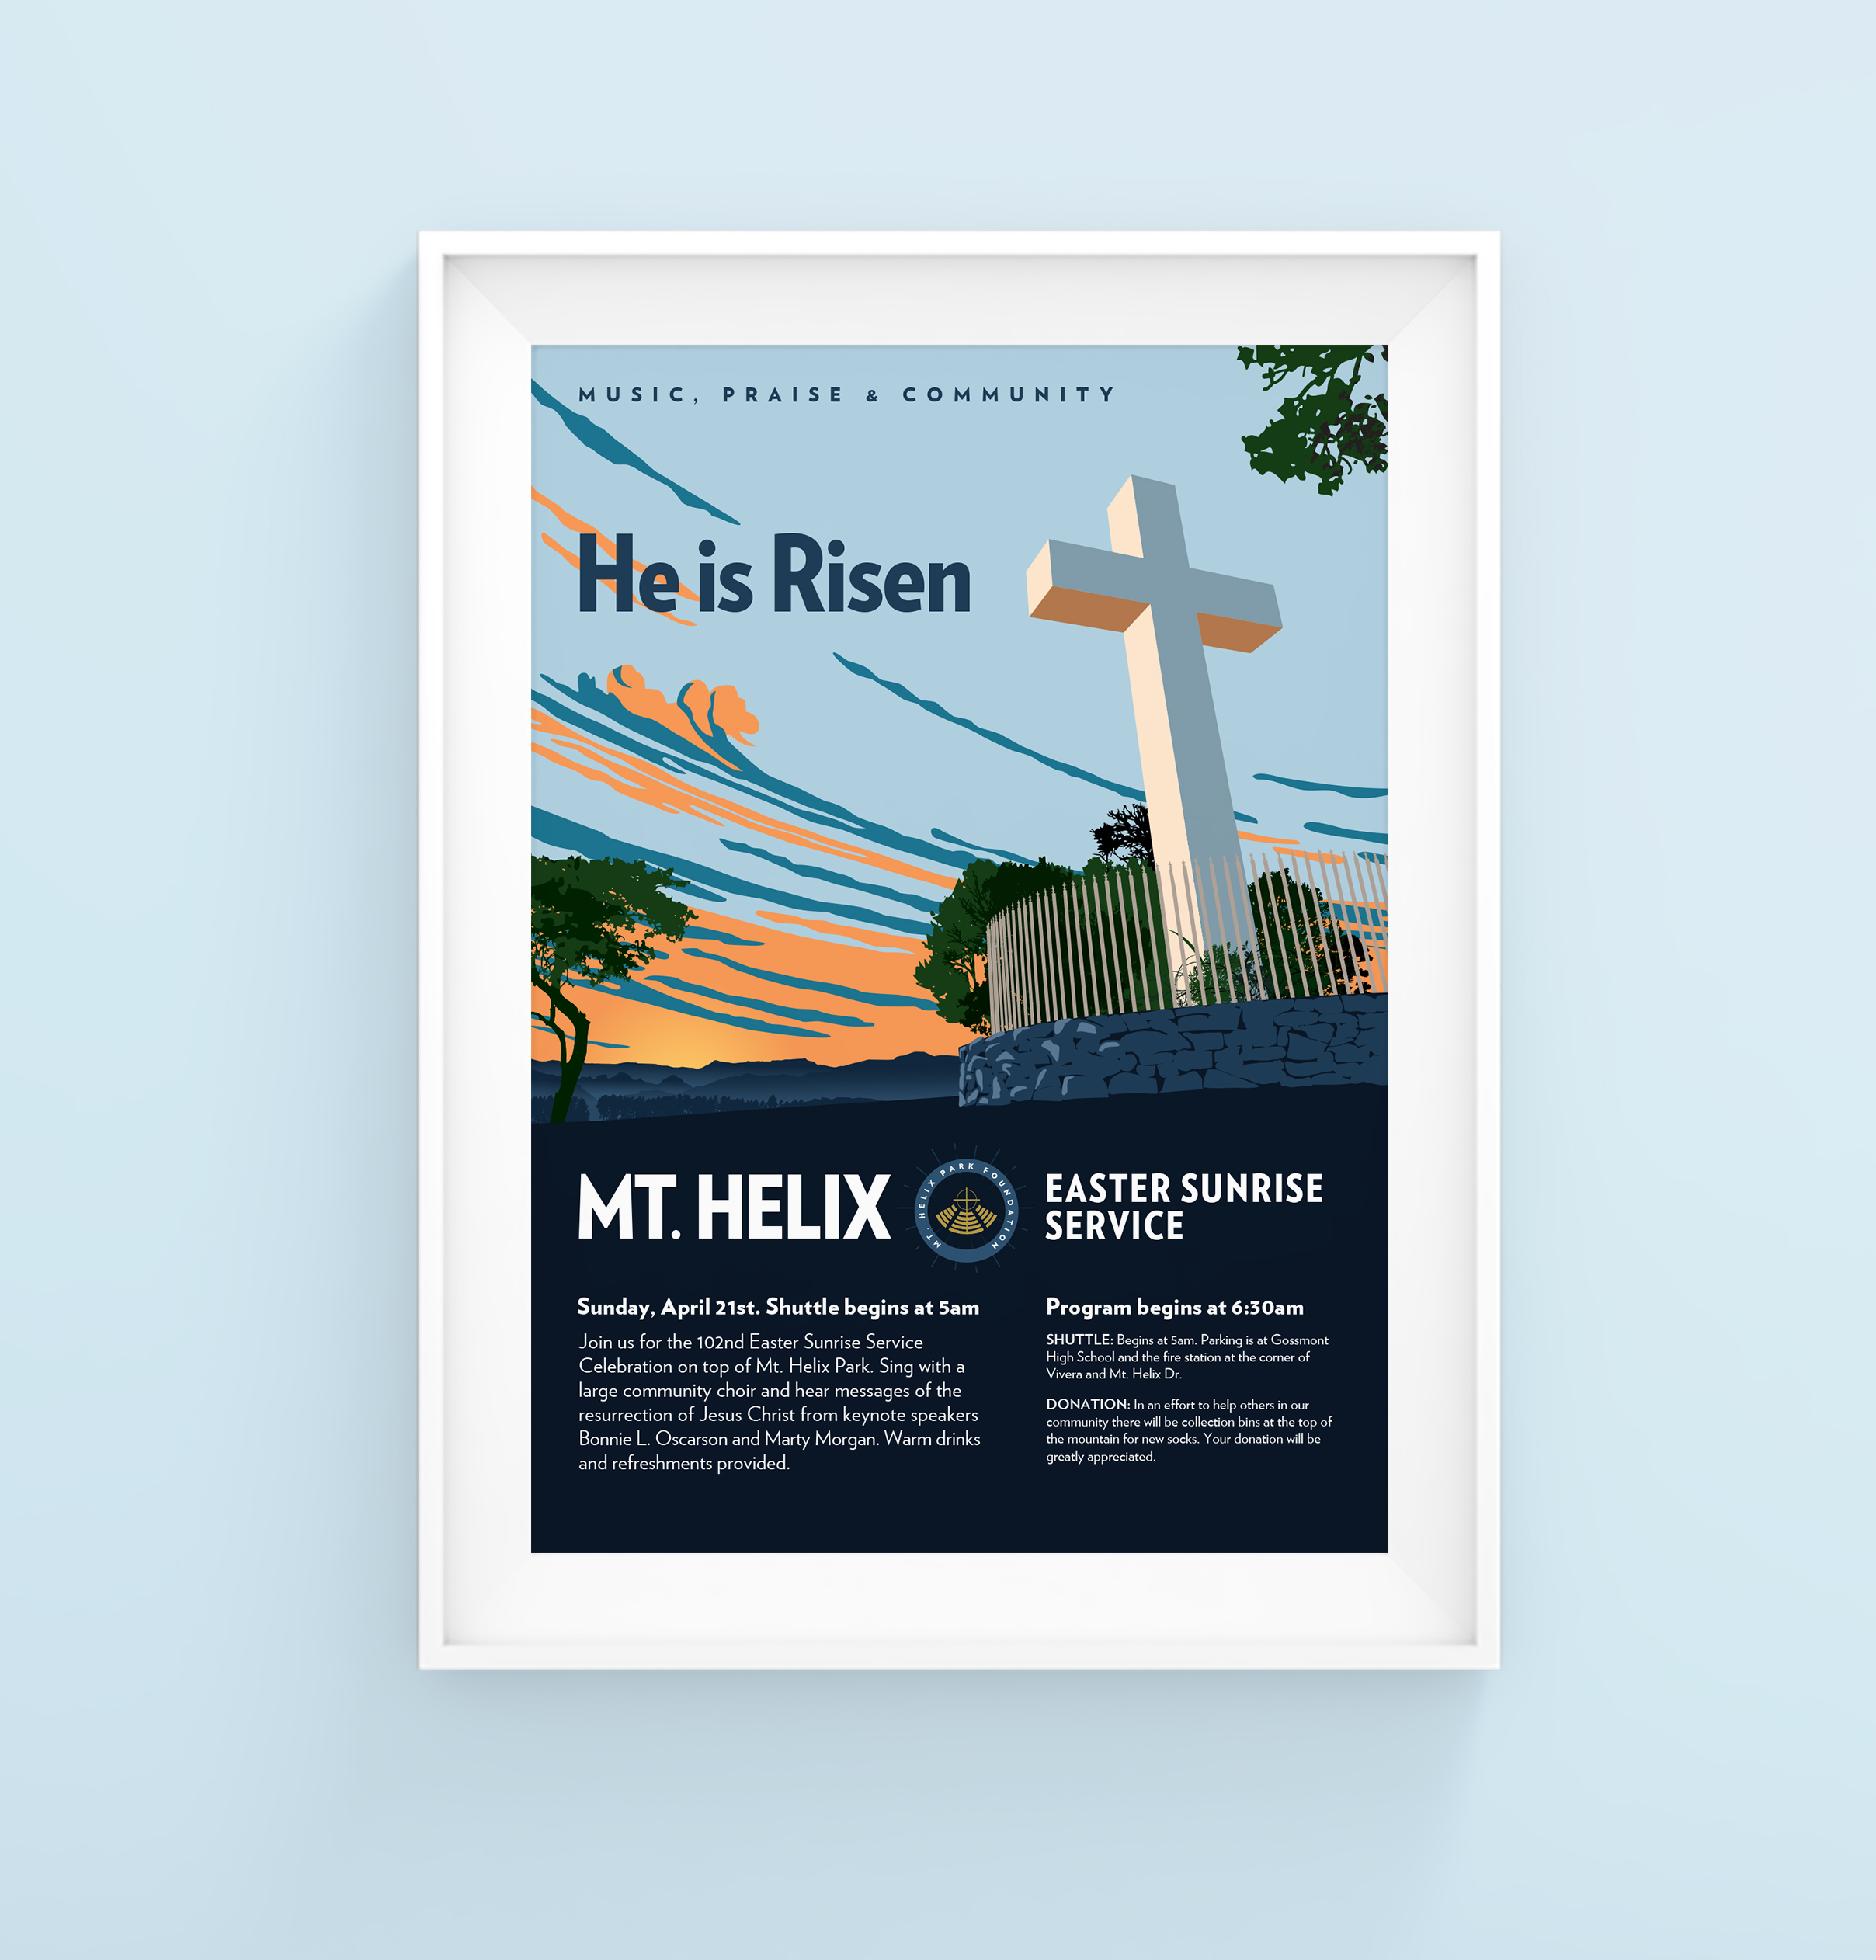 Poster for Mt. Helix Easter Sunrise Service